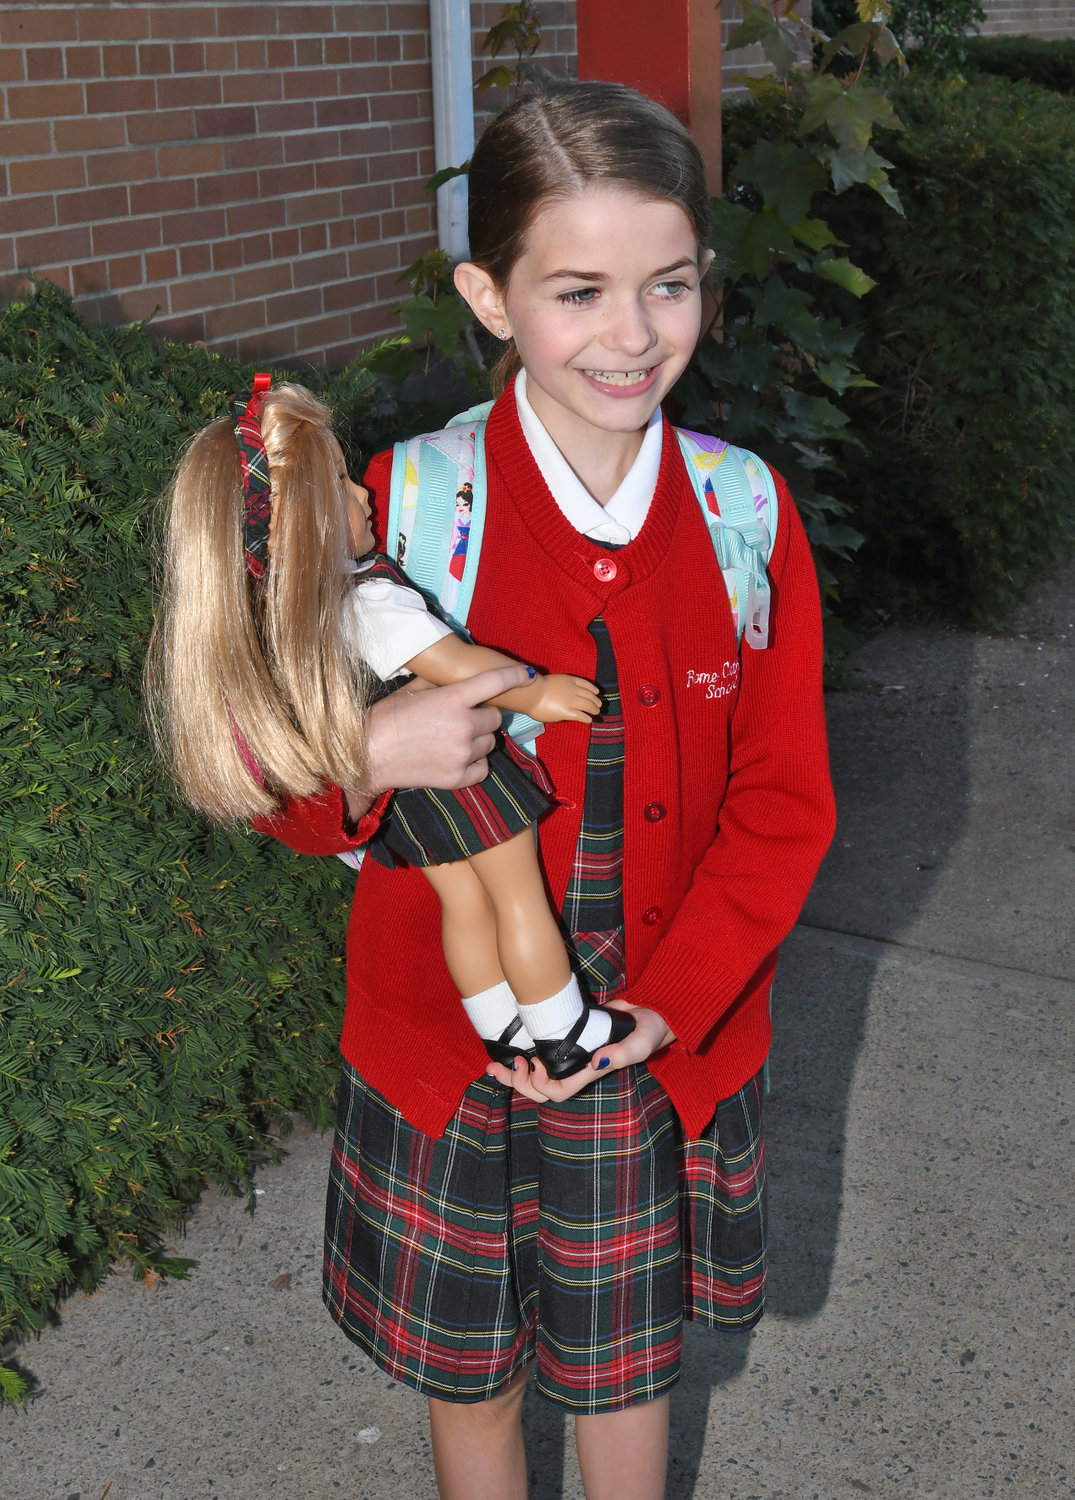 Isabelle Broughton 4th grader dressed in the school uniform with her doll that is also dressed up in the school uniform